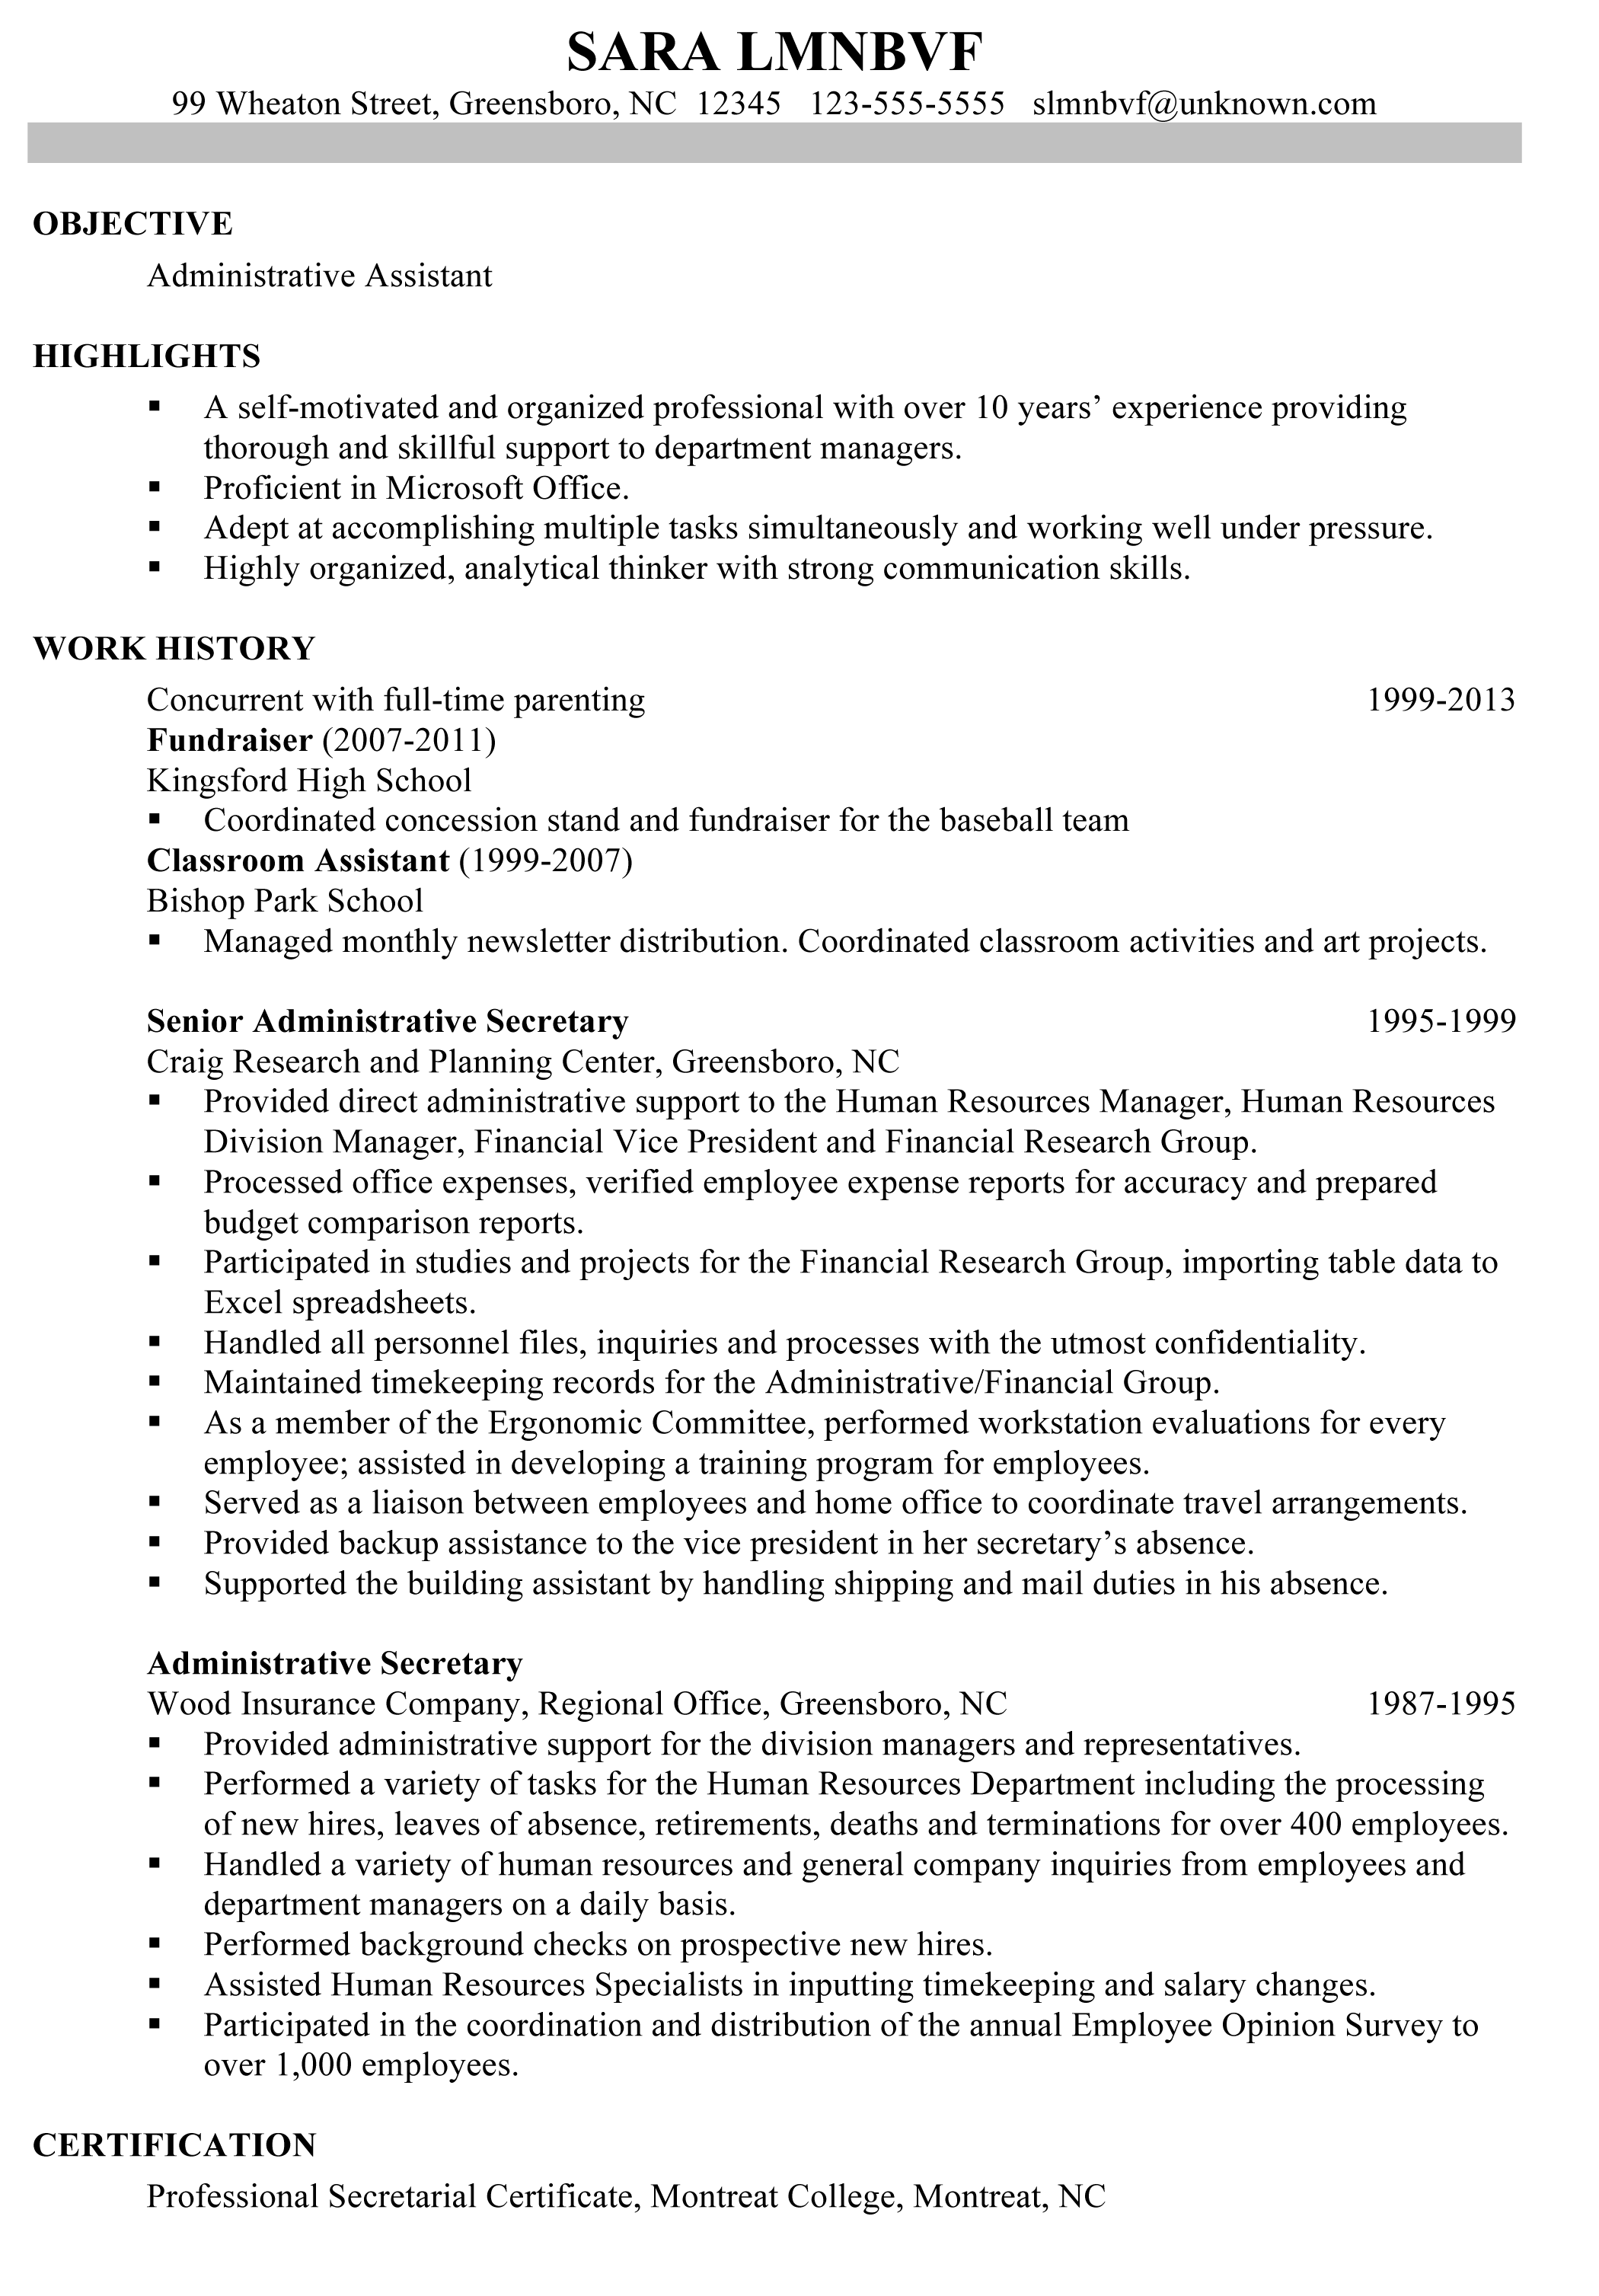 Executive Assistant Resume Samples Great Administrative Assistant Resumes  Using Professional Resume